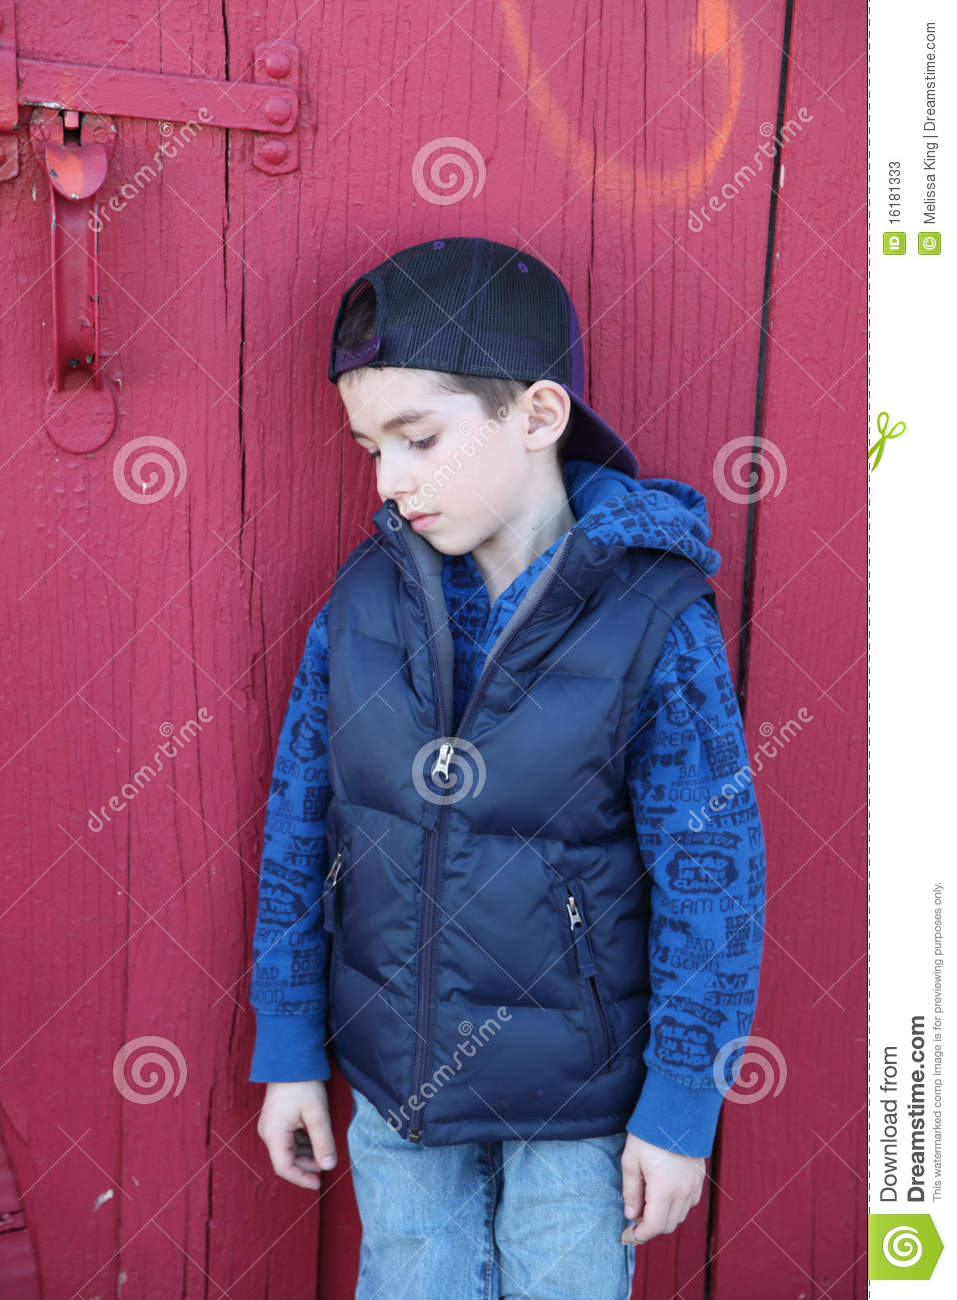 sad boy red door stock image image of youngster young